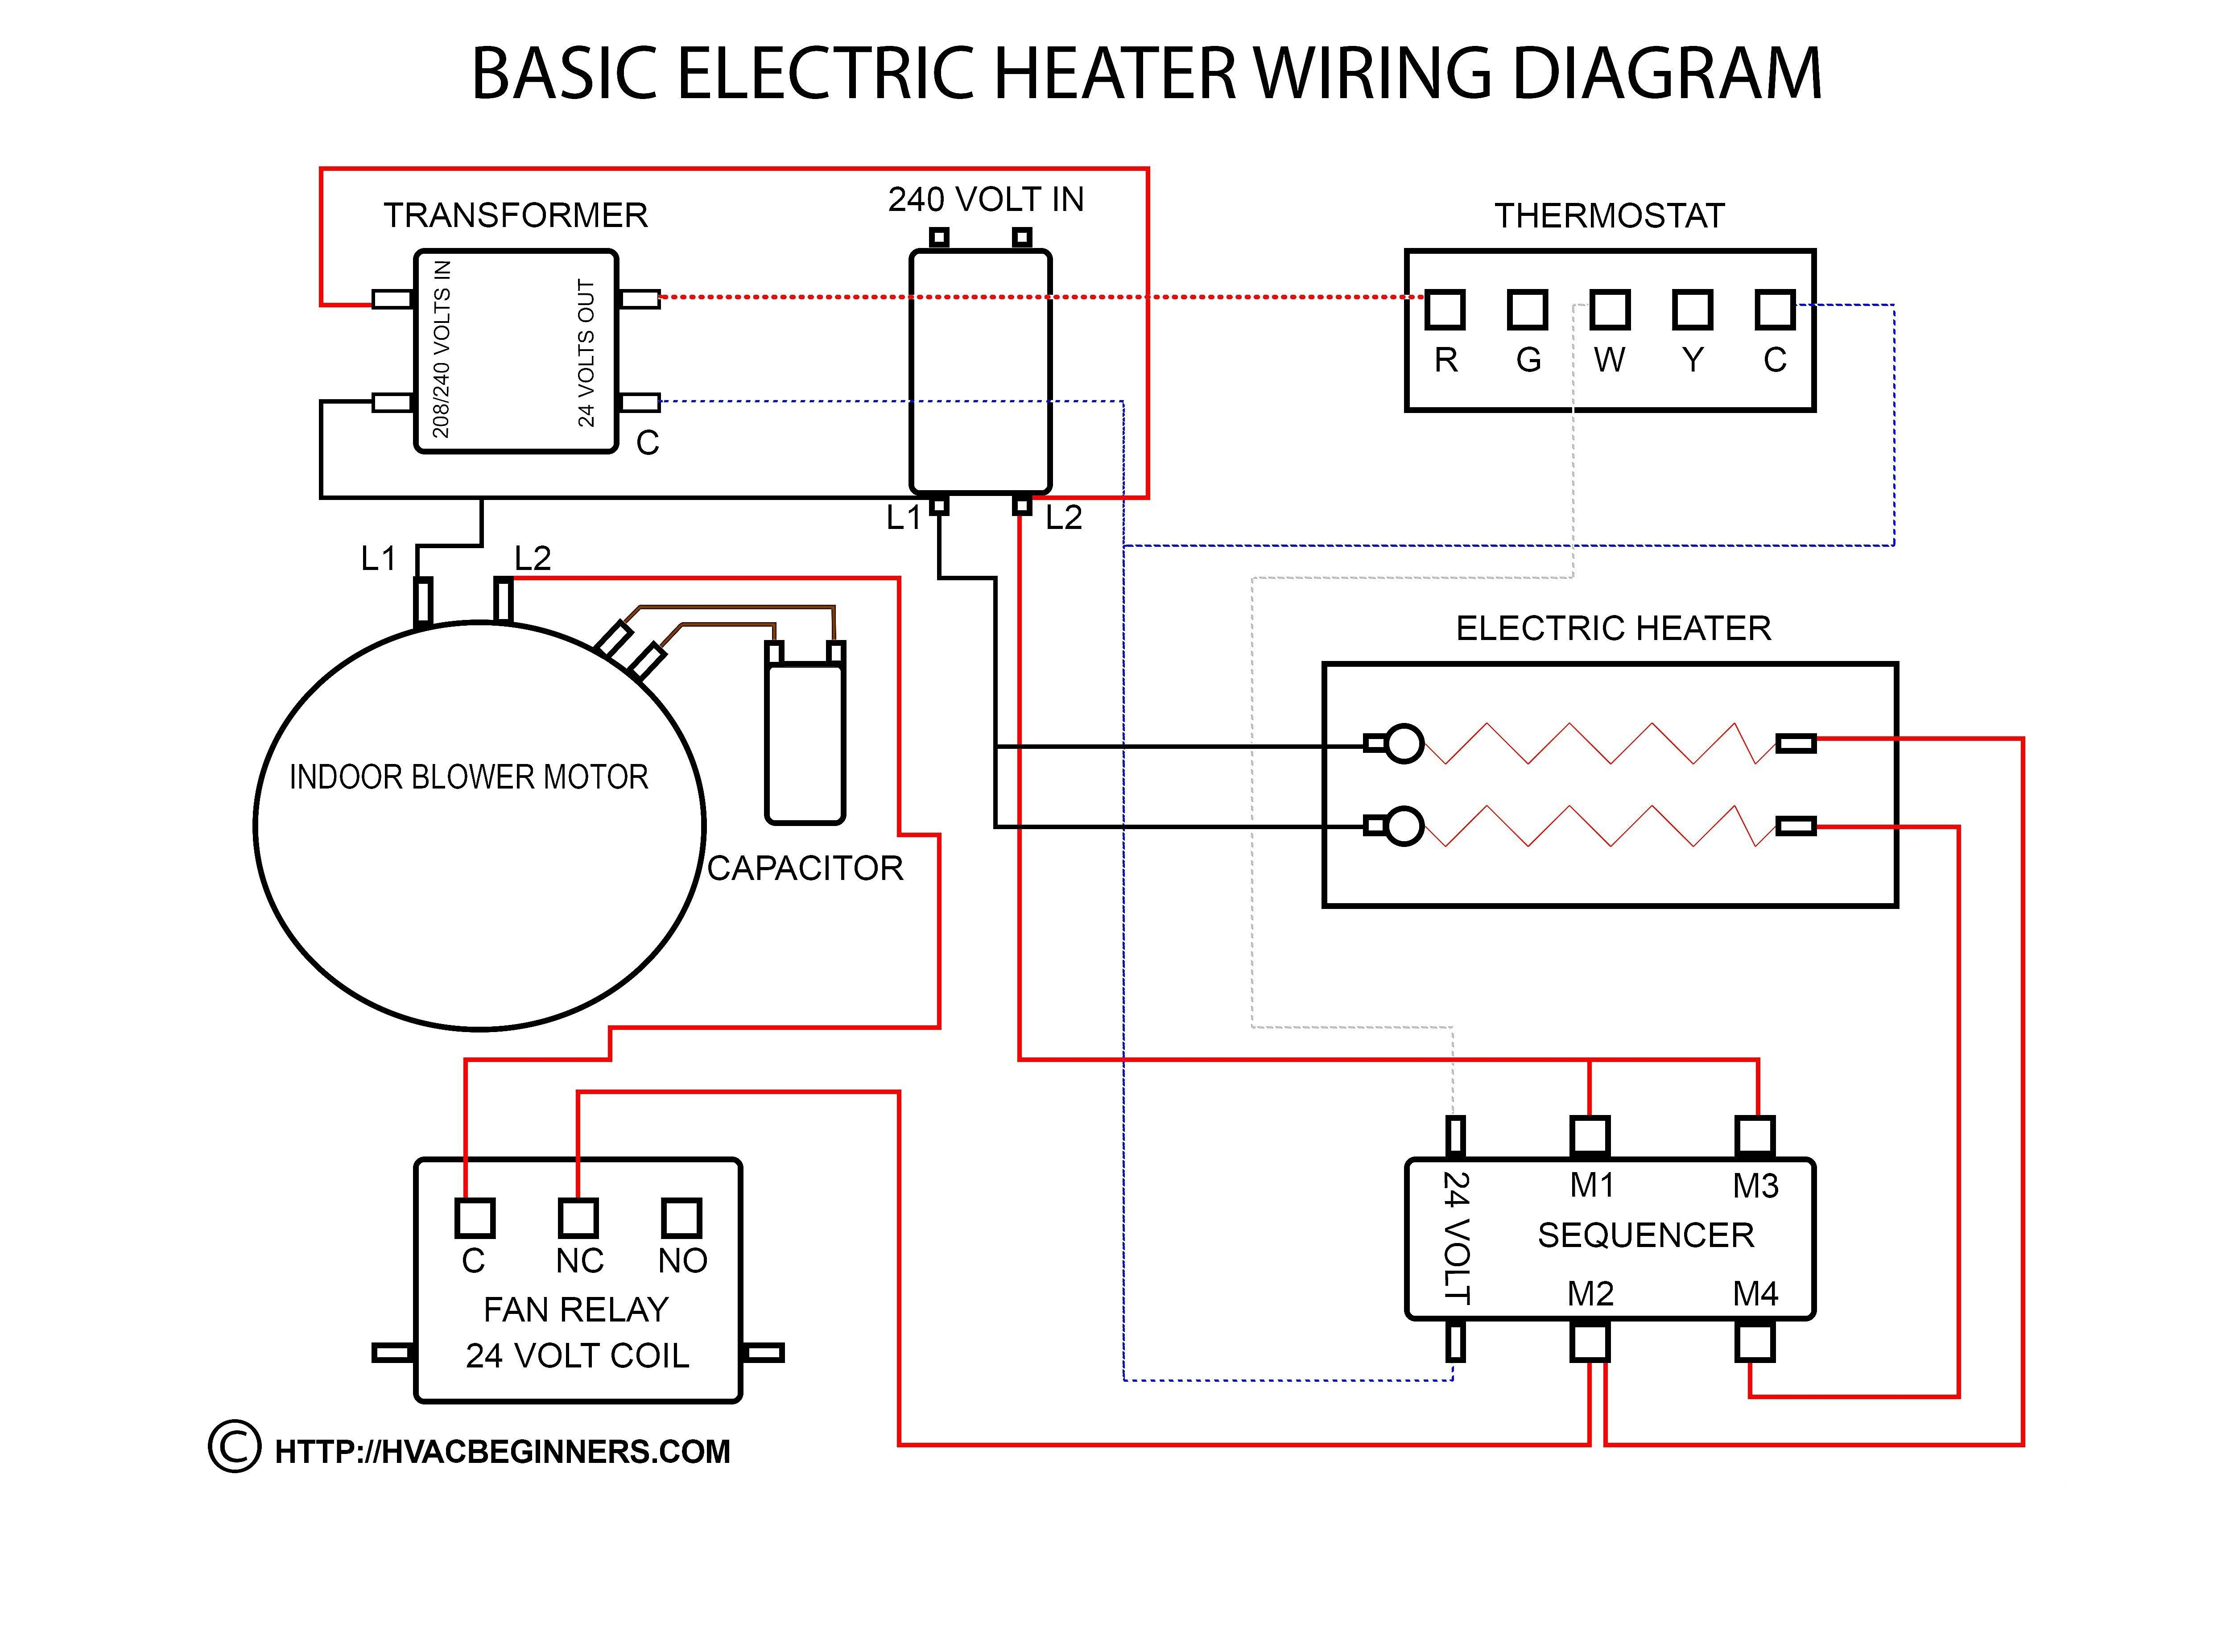 Electrical Schematics Explained Elegant In 2020 Basic Electrical Wiring Electrical Circuit Diagram Circuit Diagram